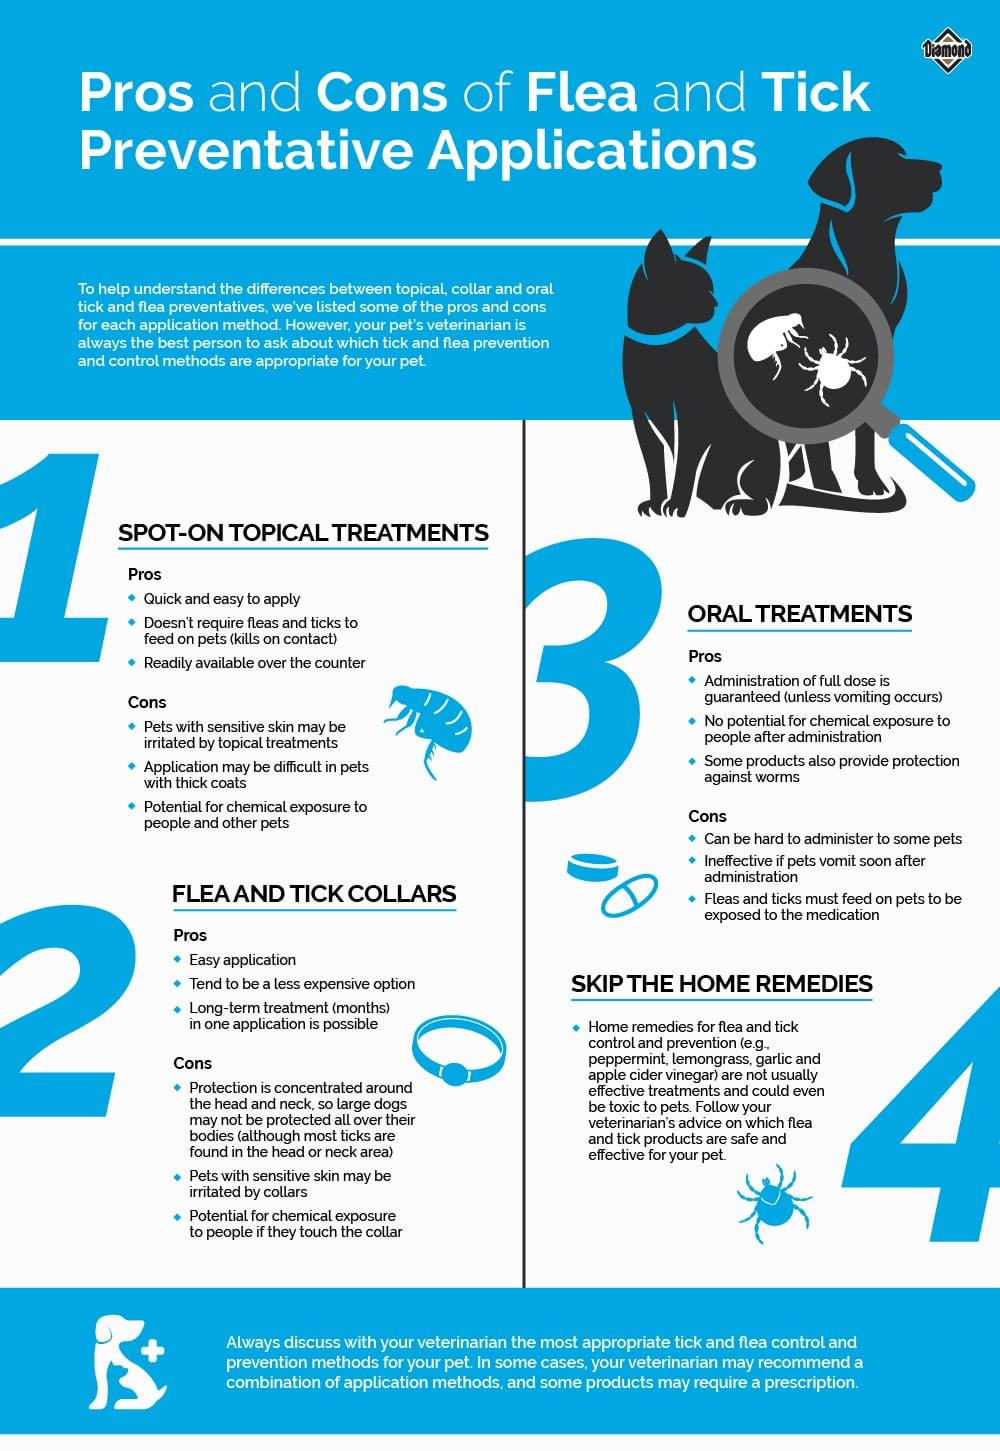 Pros and Cons of Flea and Tick Preventative Applications Infographic | Diamond Pet Foods